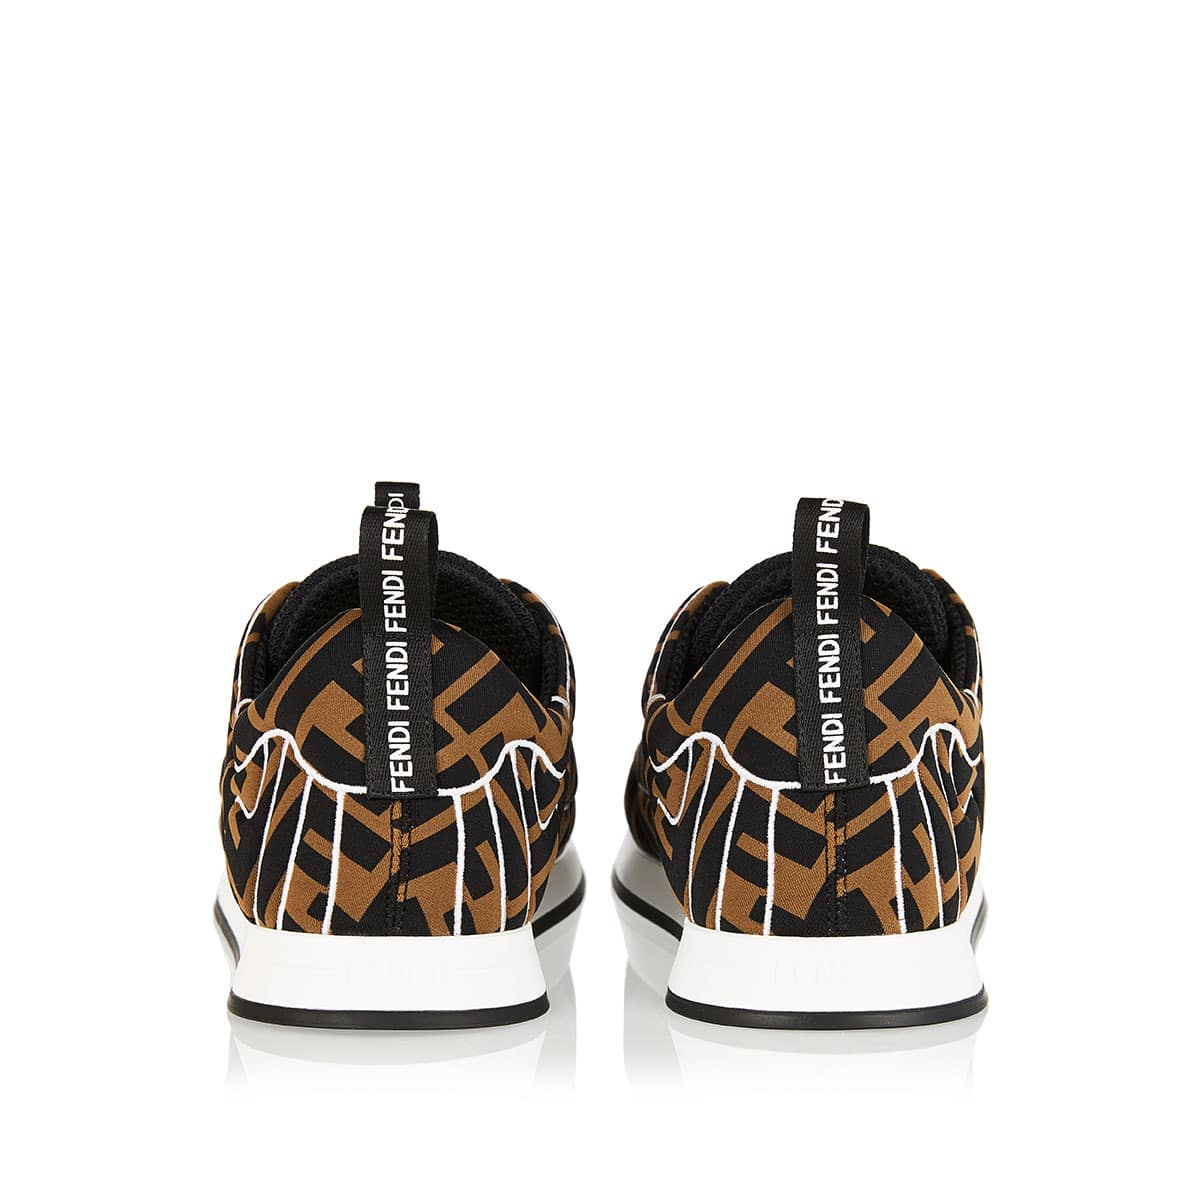 FFreedom slip-on sneakers